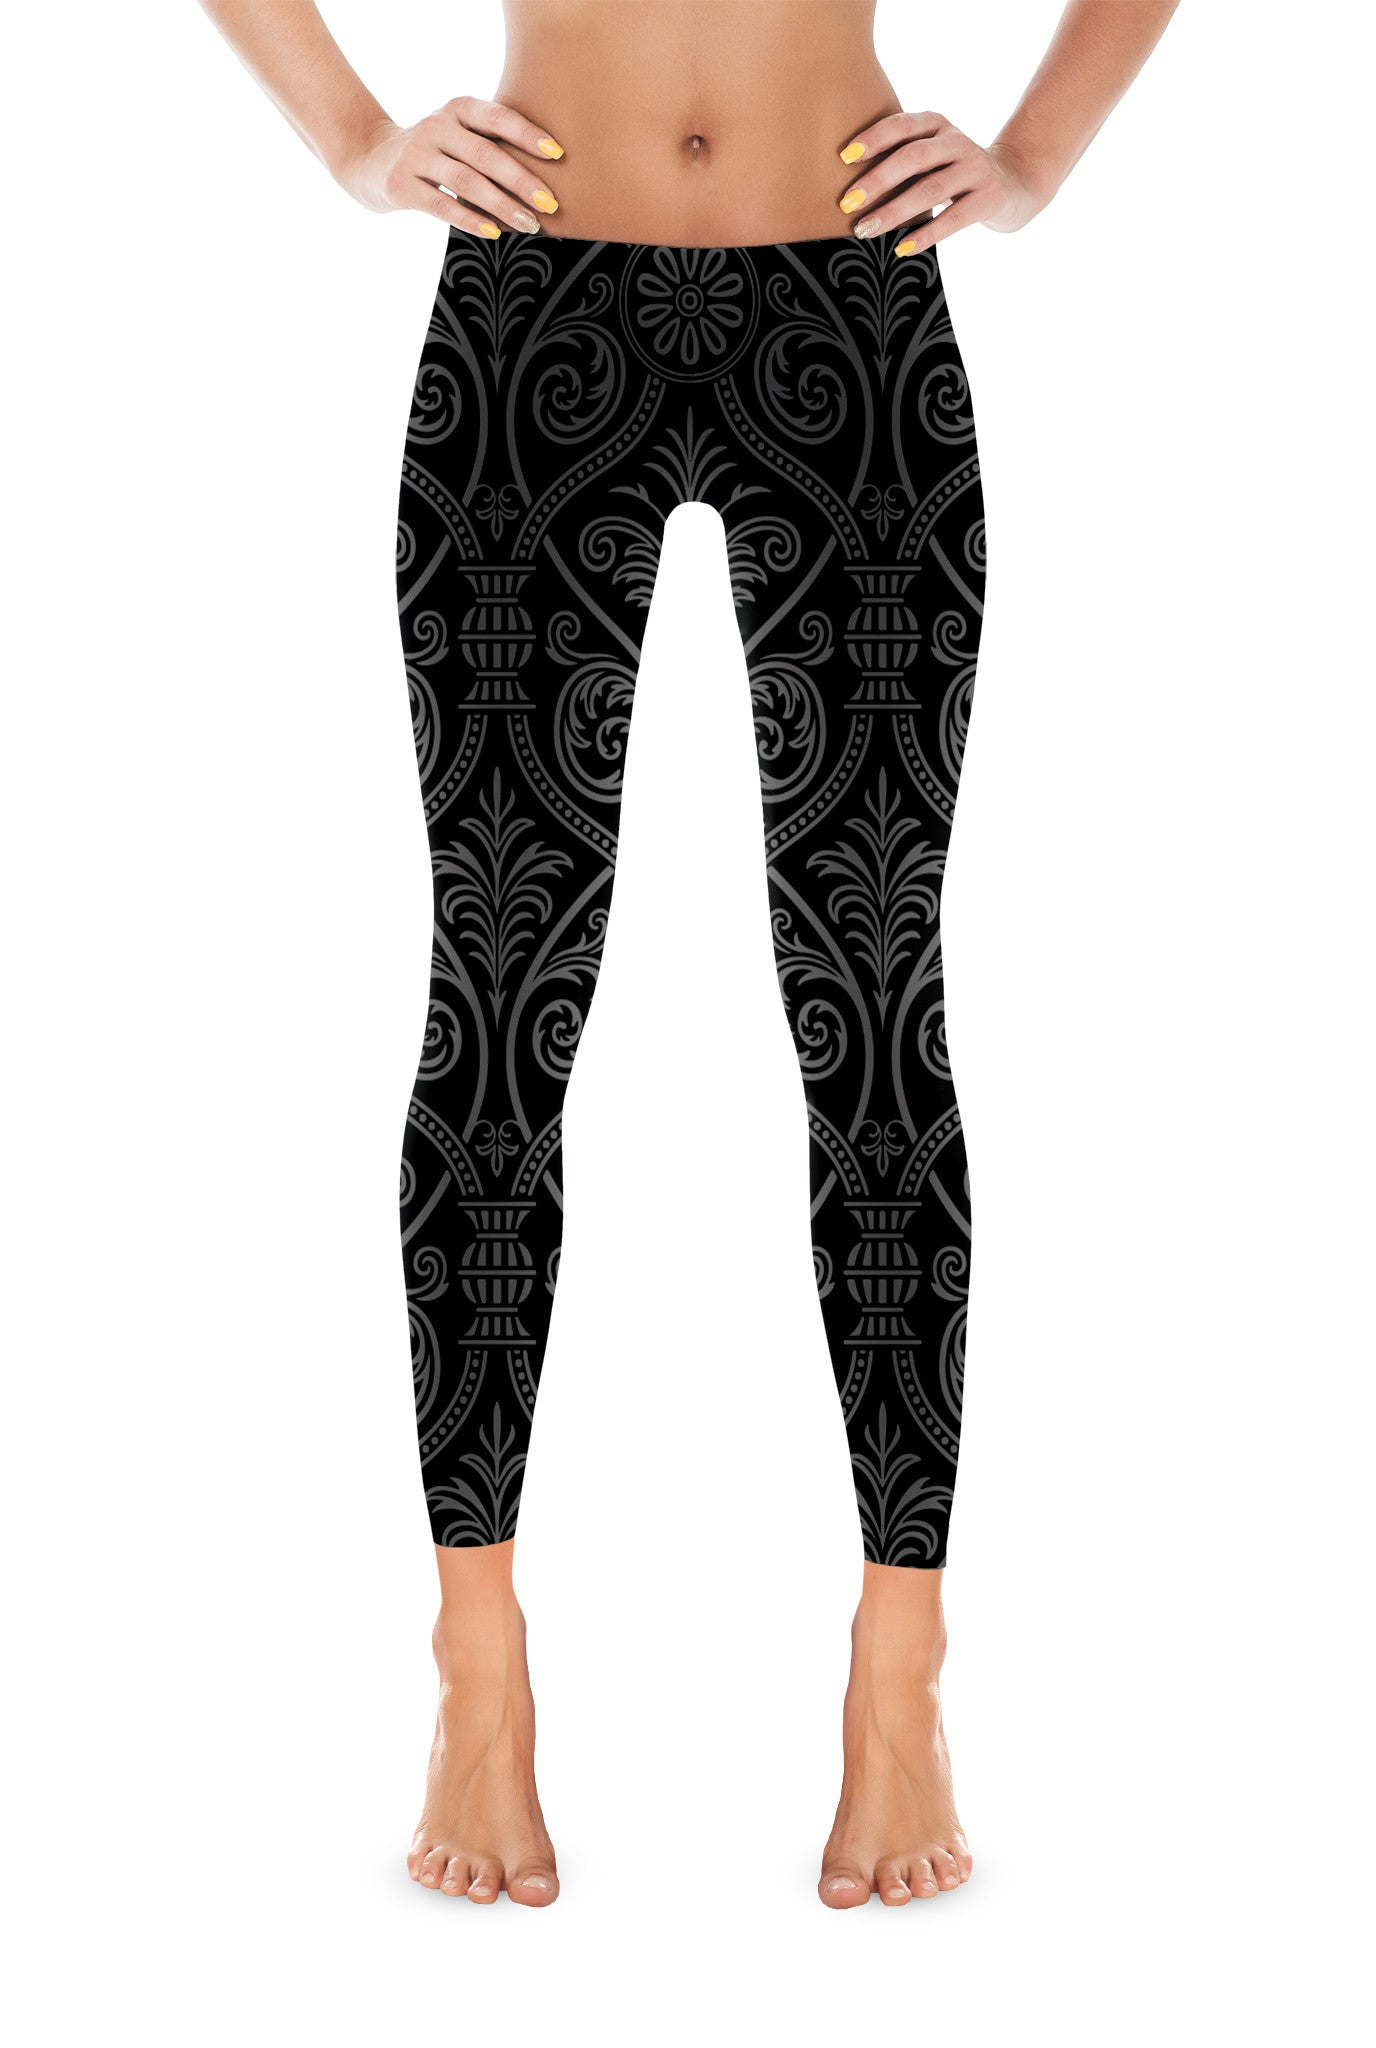 Damask Pattern Leggings Legging - Square Boy Clothing